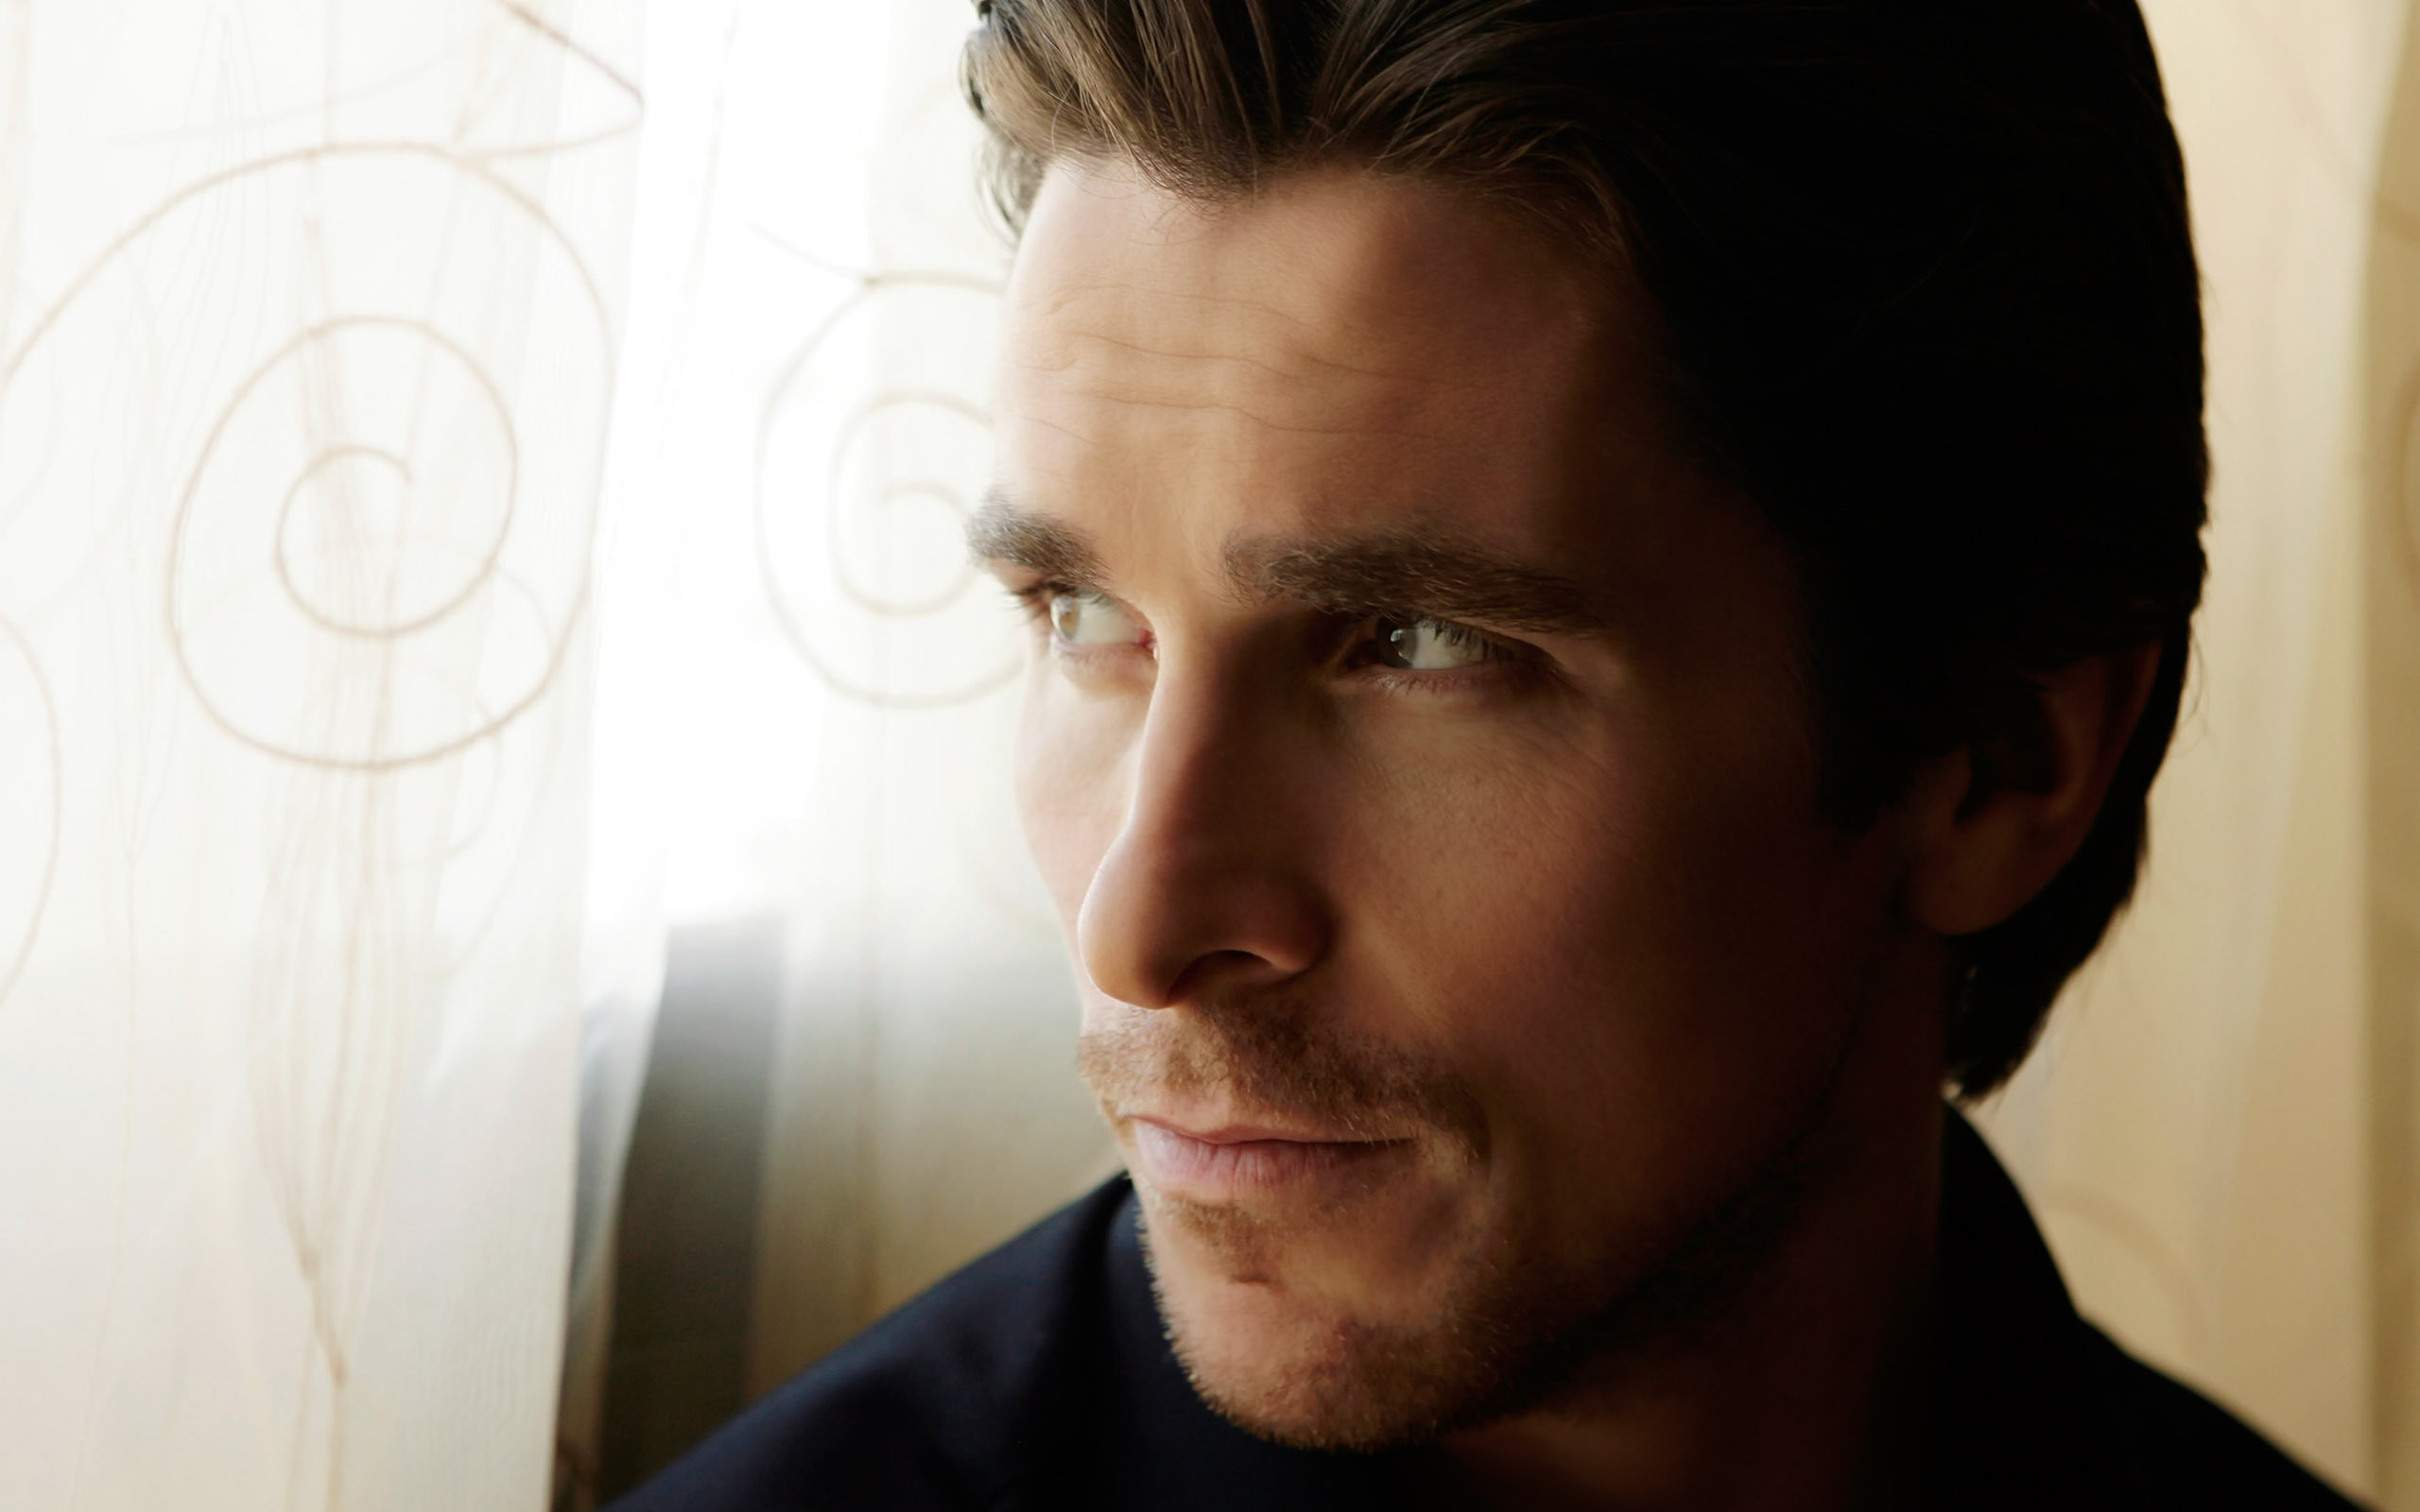 ws_Christian_Bale_Portret_2560x1600